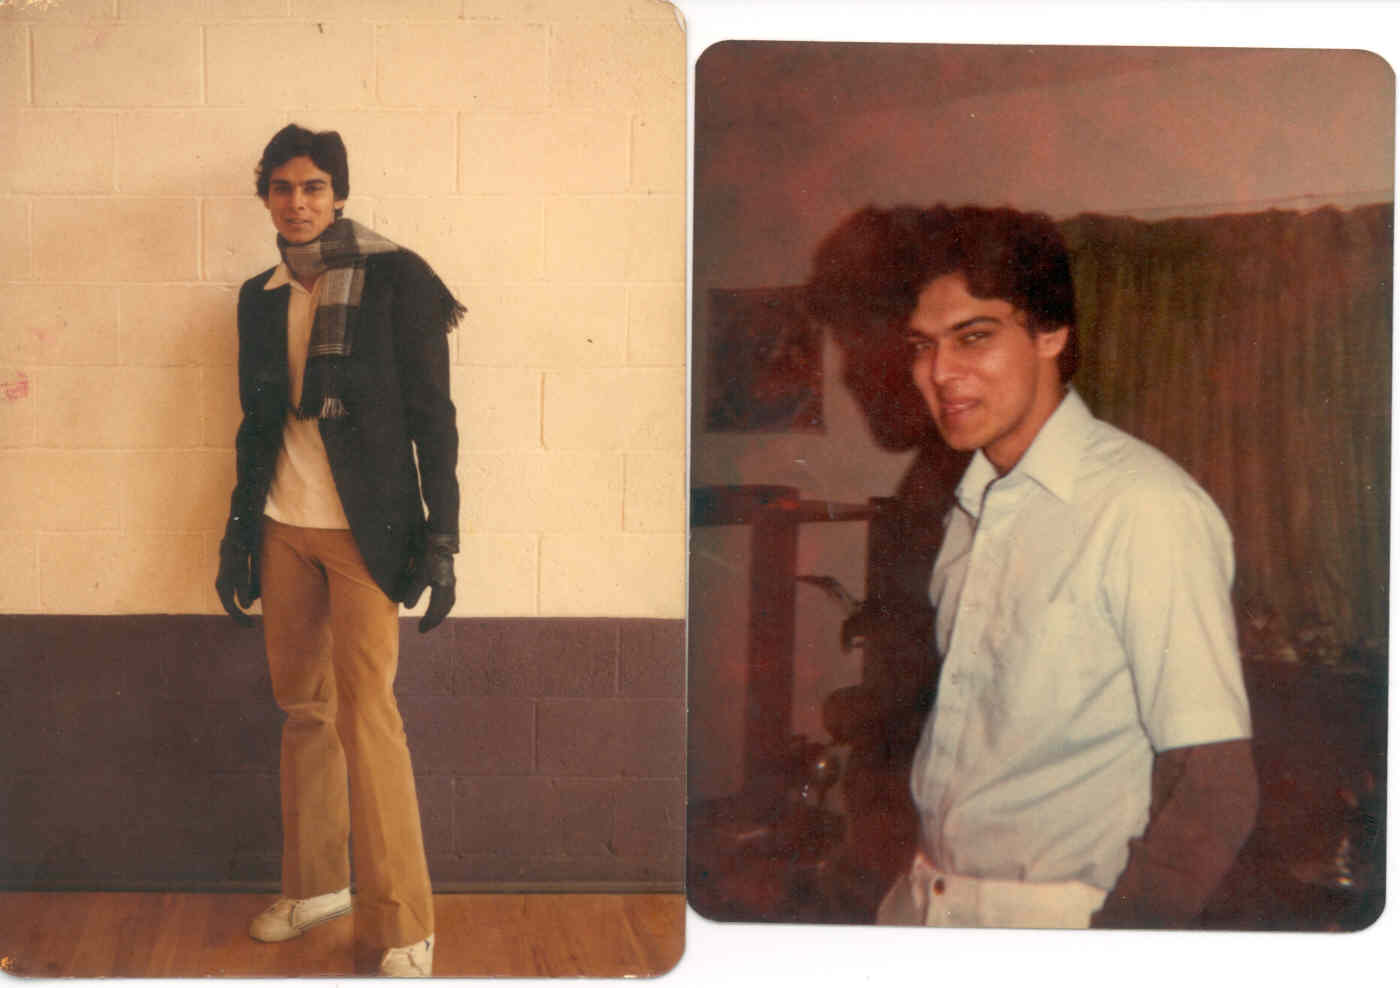 Myself at Springfield College in Illinois (1980)